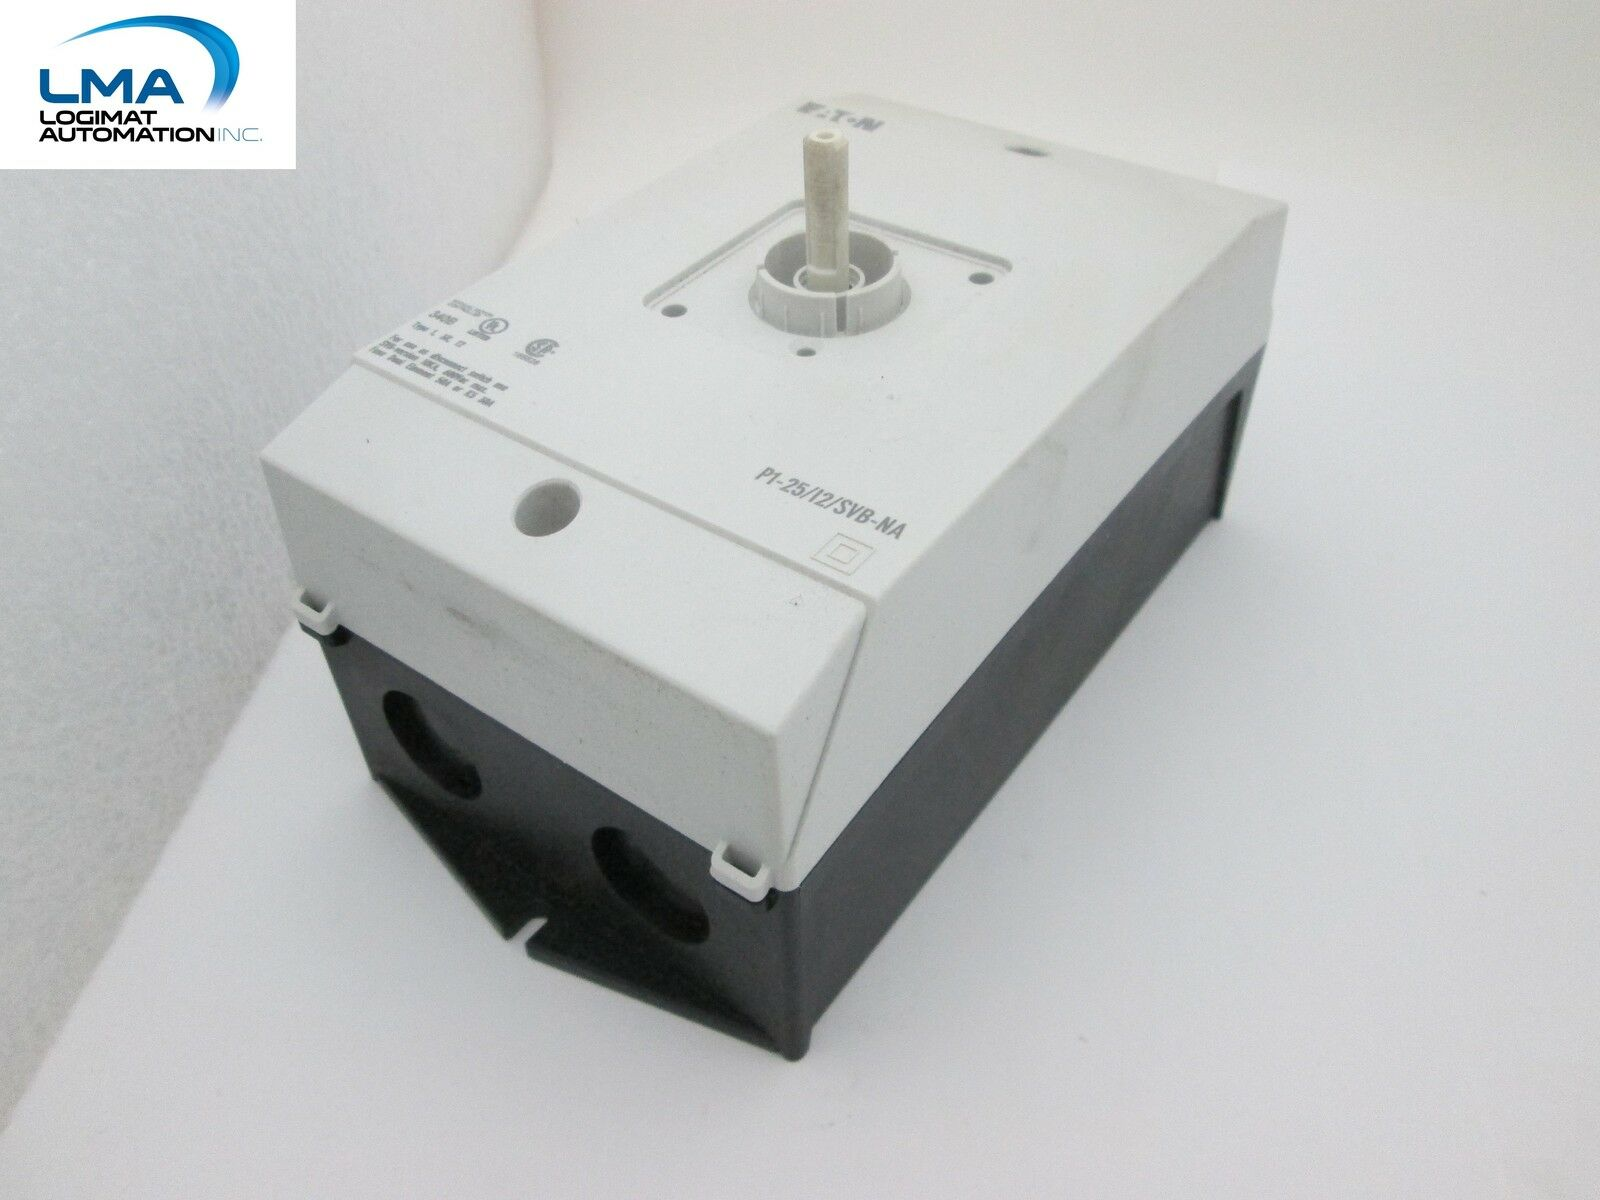 EATON MOELLER P1-25 I2 SVB-NA MOTOR CONTROL MAIN DISCONNECT SWITCH  NEW